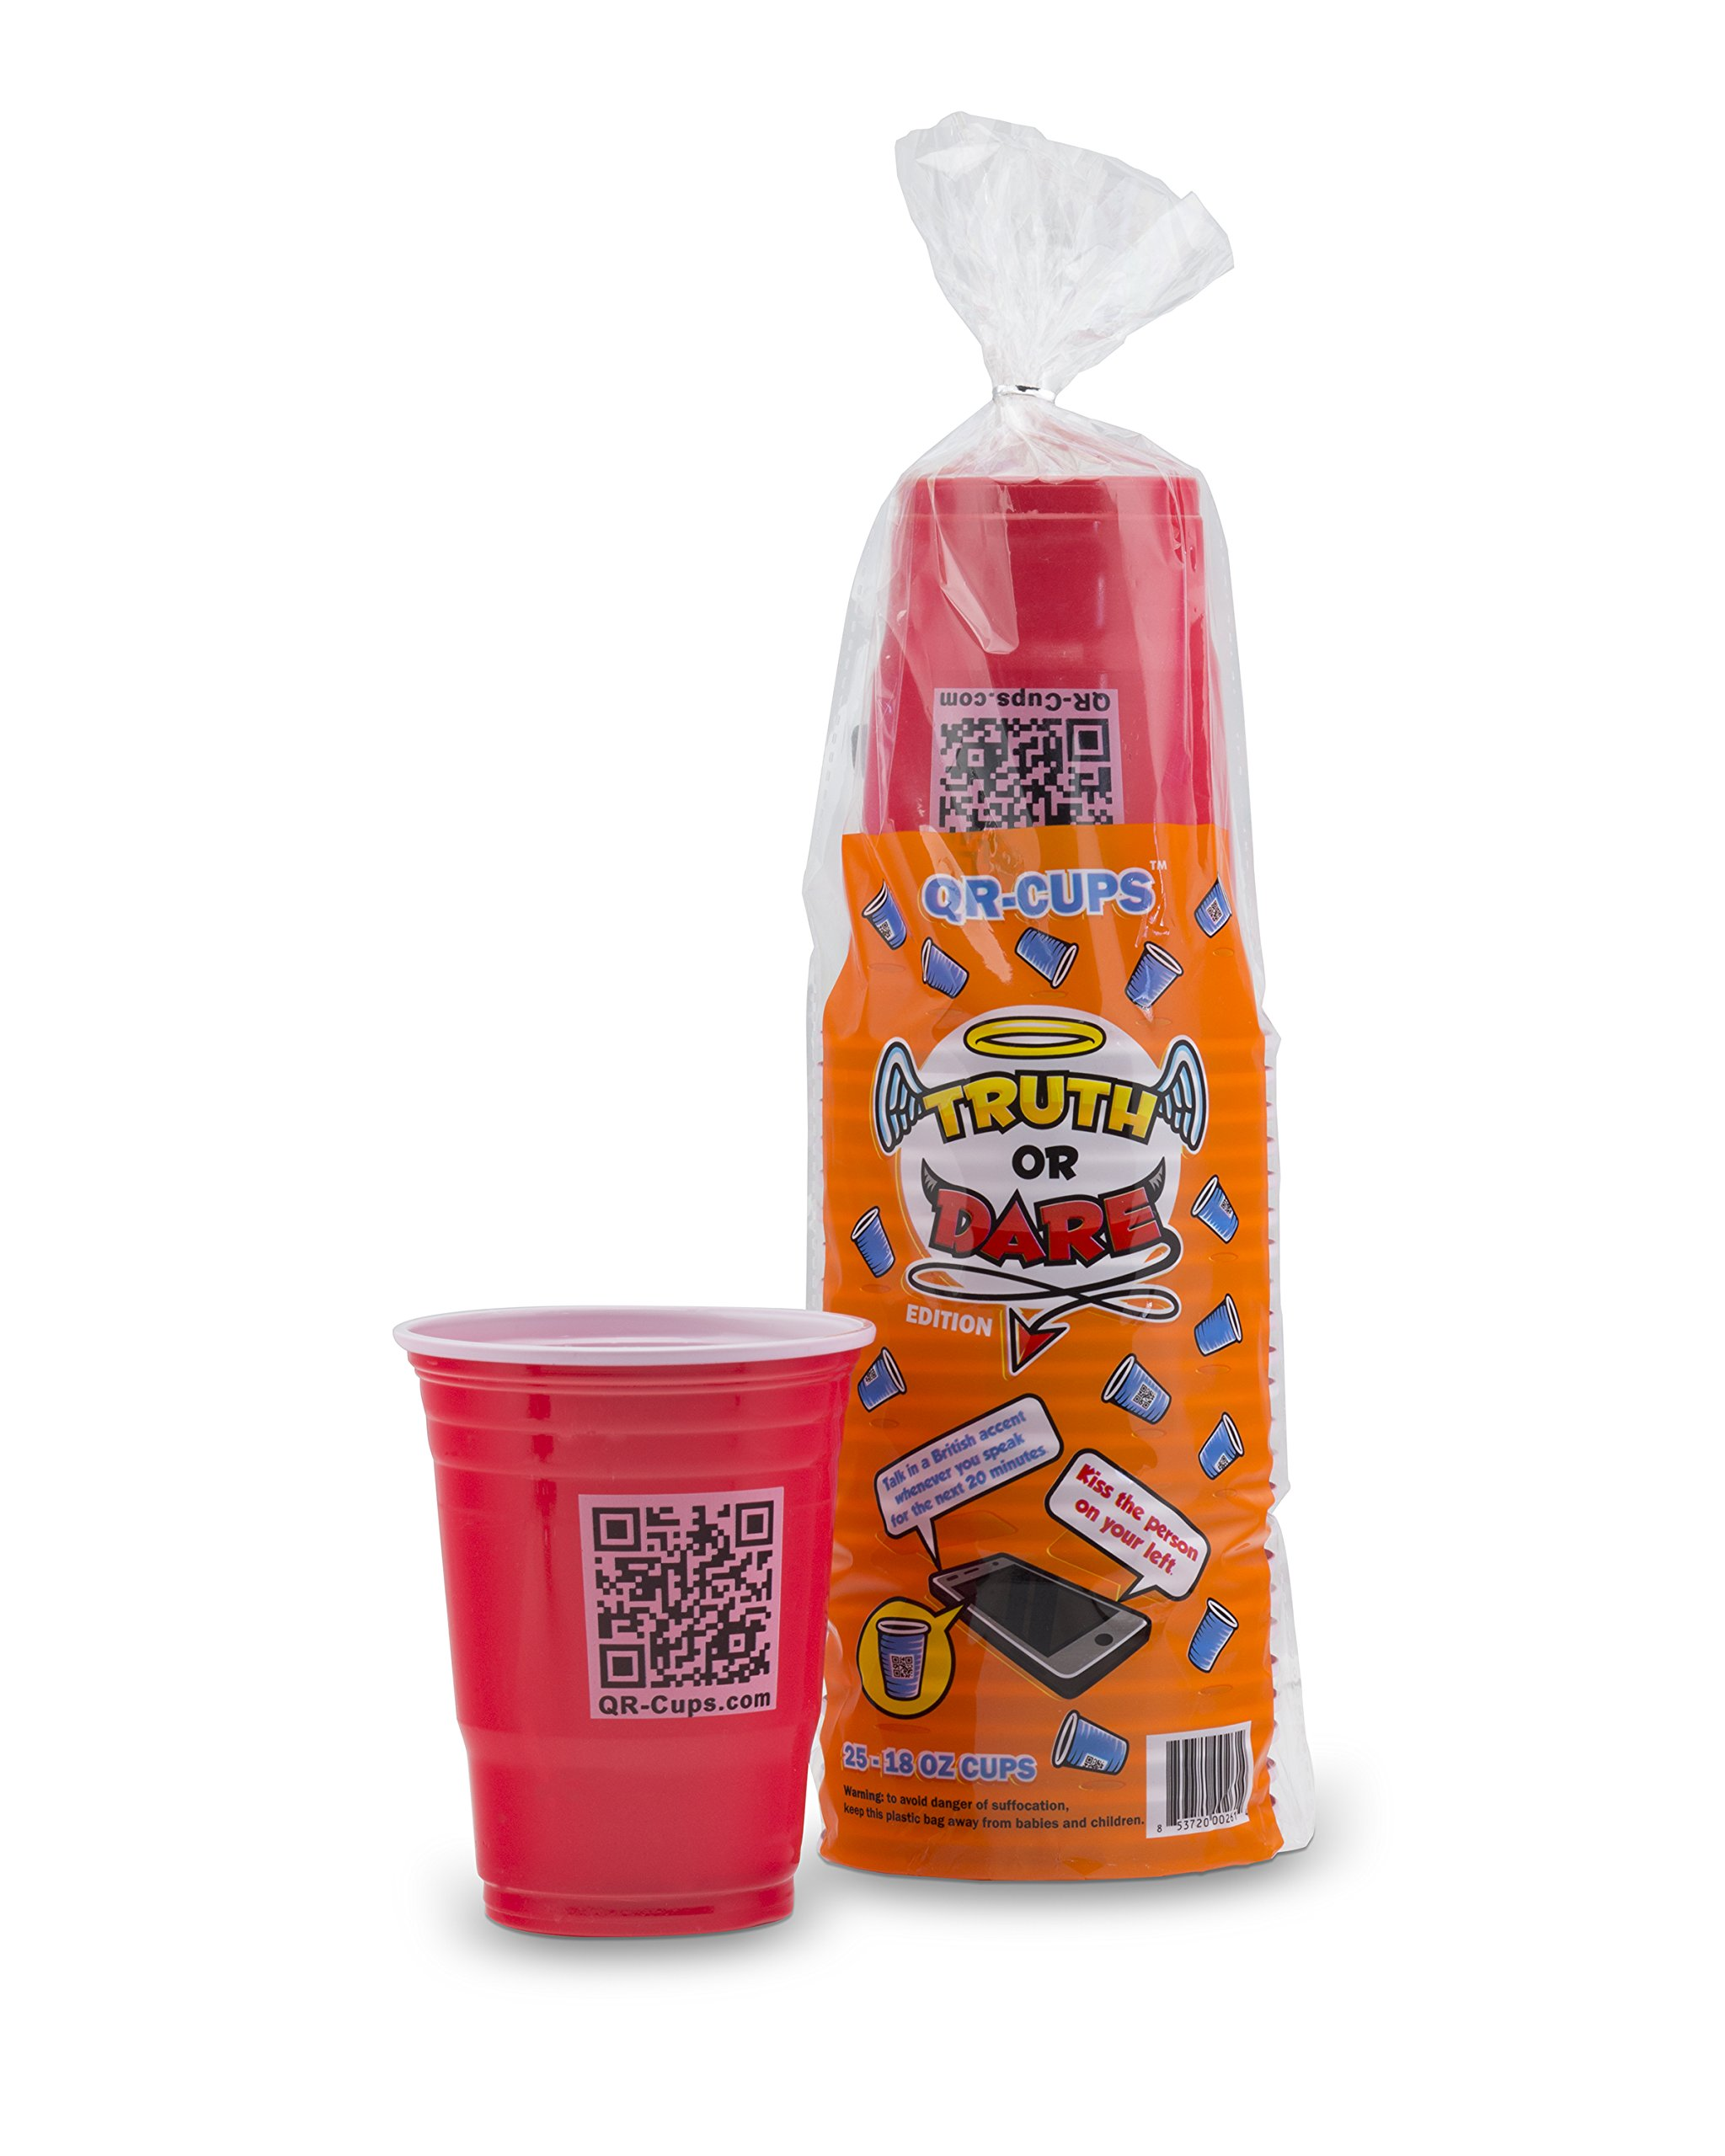 Convenient Gadgets & Gifts QR-Cups, Truth or Dare Edition: Drinking Party Games for Adults, a Great Addition for Beer Pong - Play Truth or Dare Beer Pong